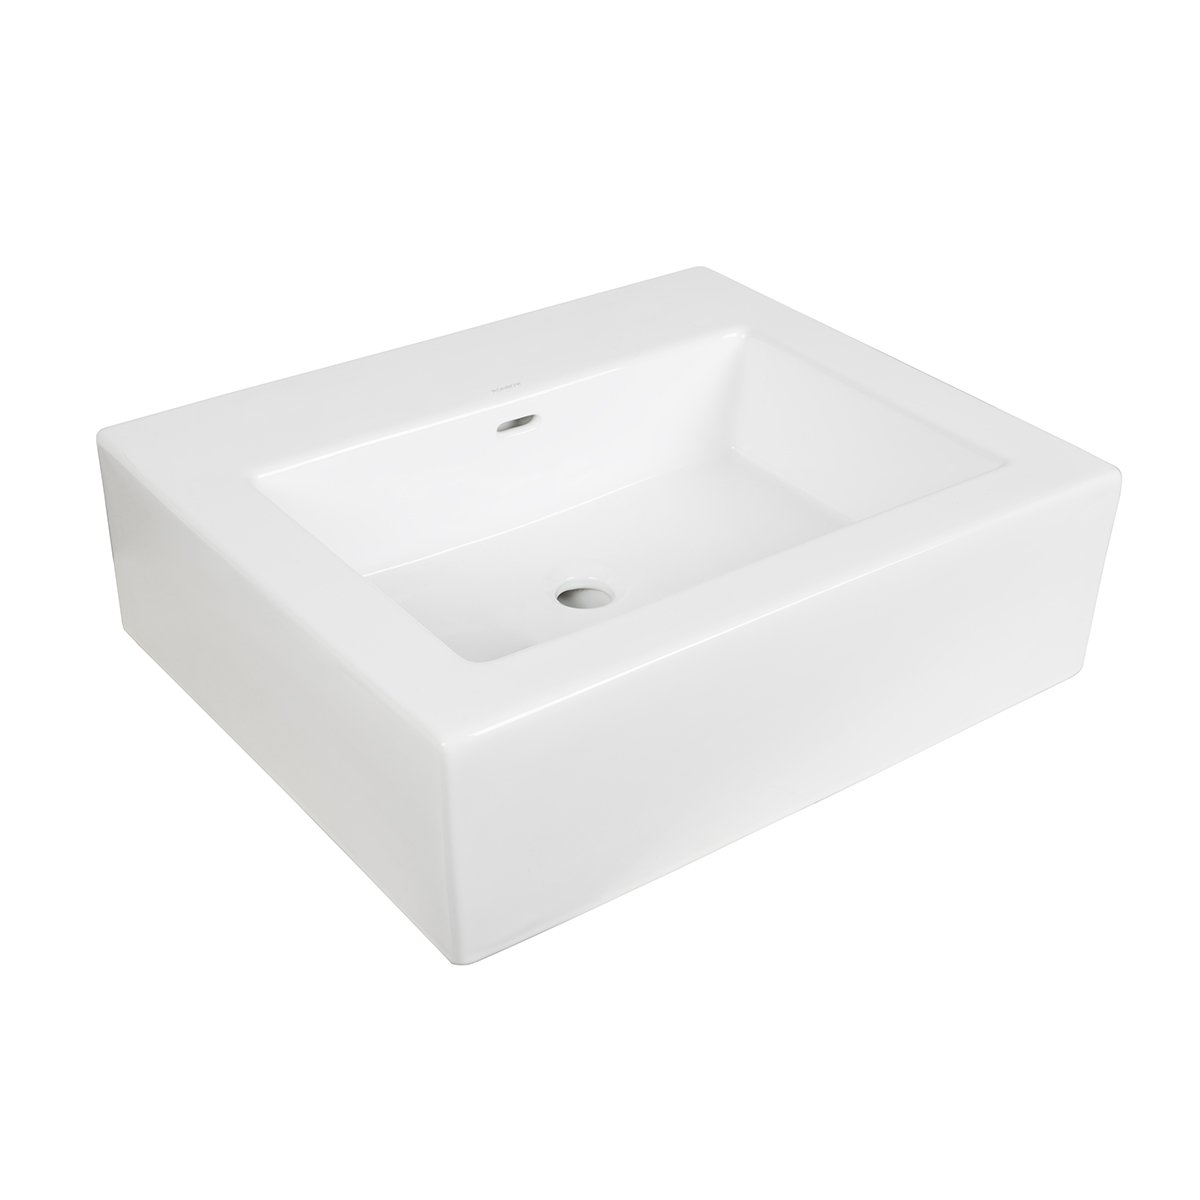 Ronbow Essentials 24'' Ceramic Lav Top W/Integrated Sink (No Faucet Hole) - White 217724-0-WH